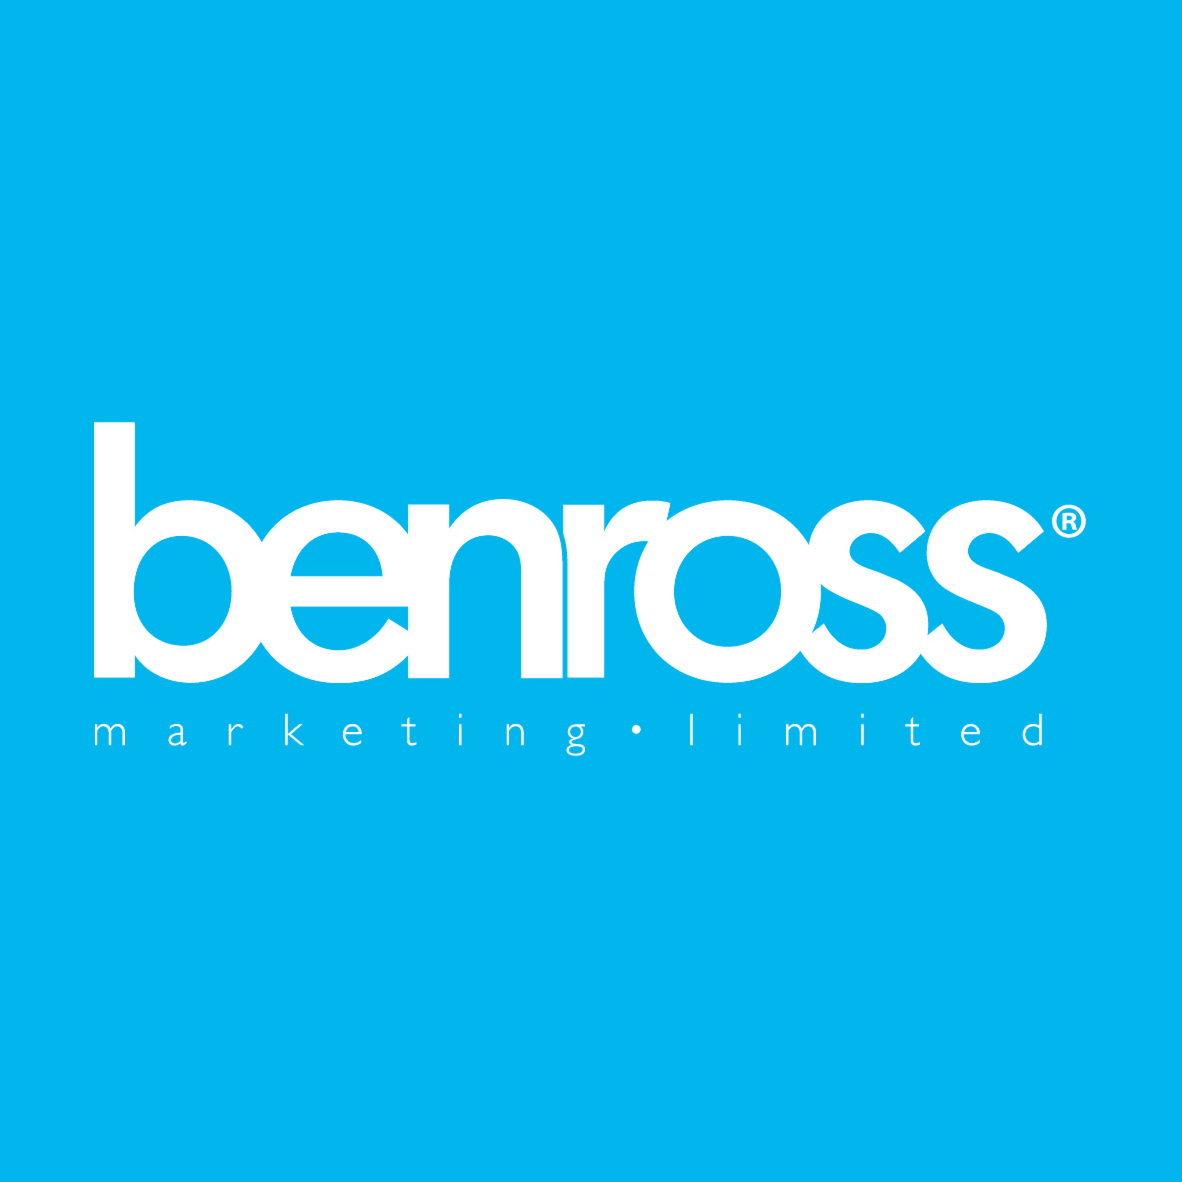 Benross Marketing Ltd